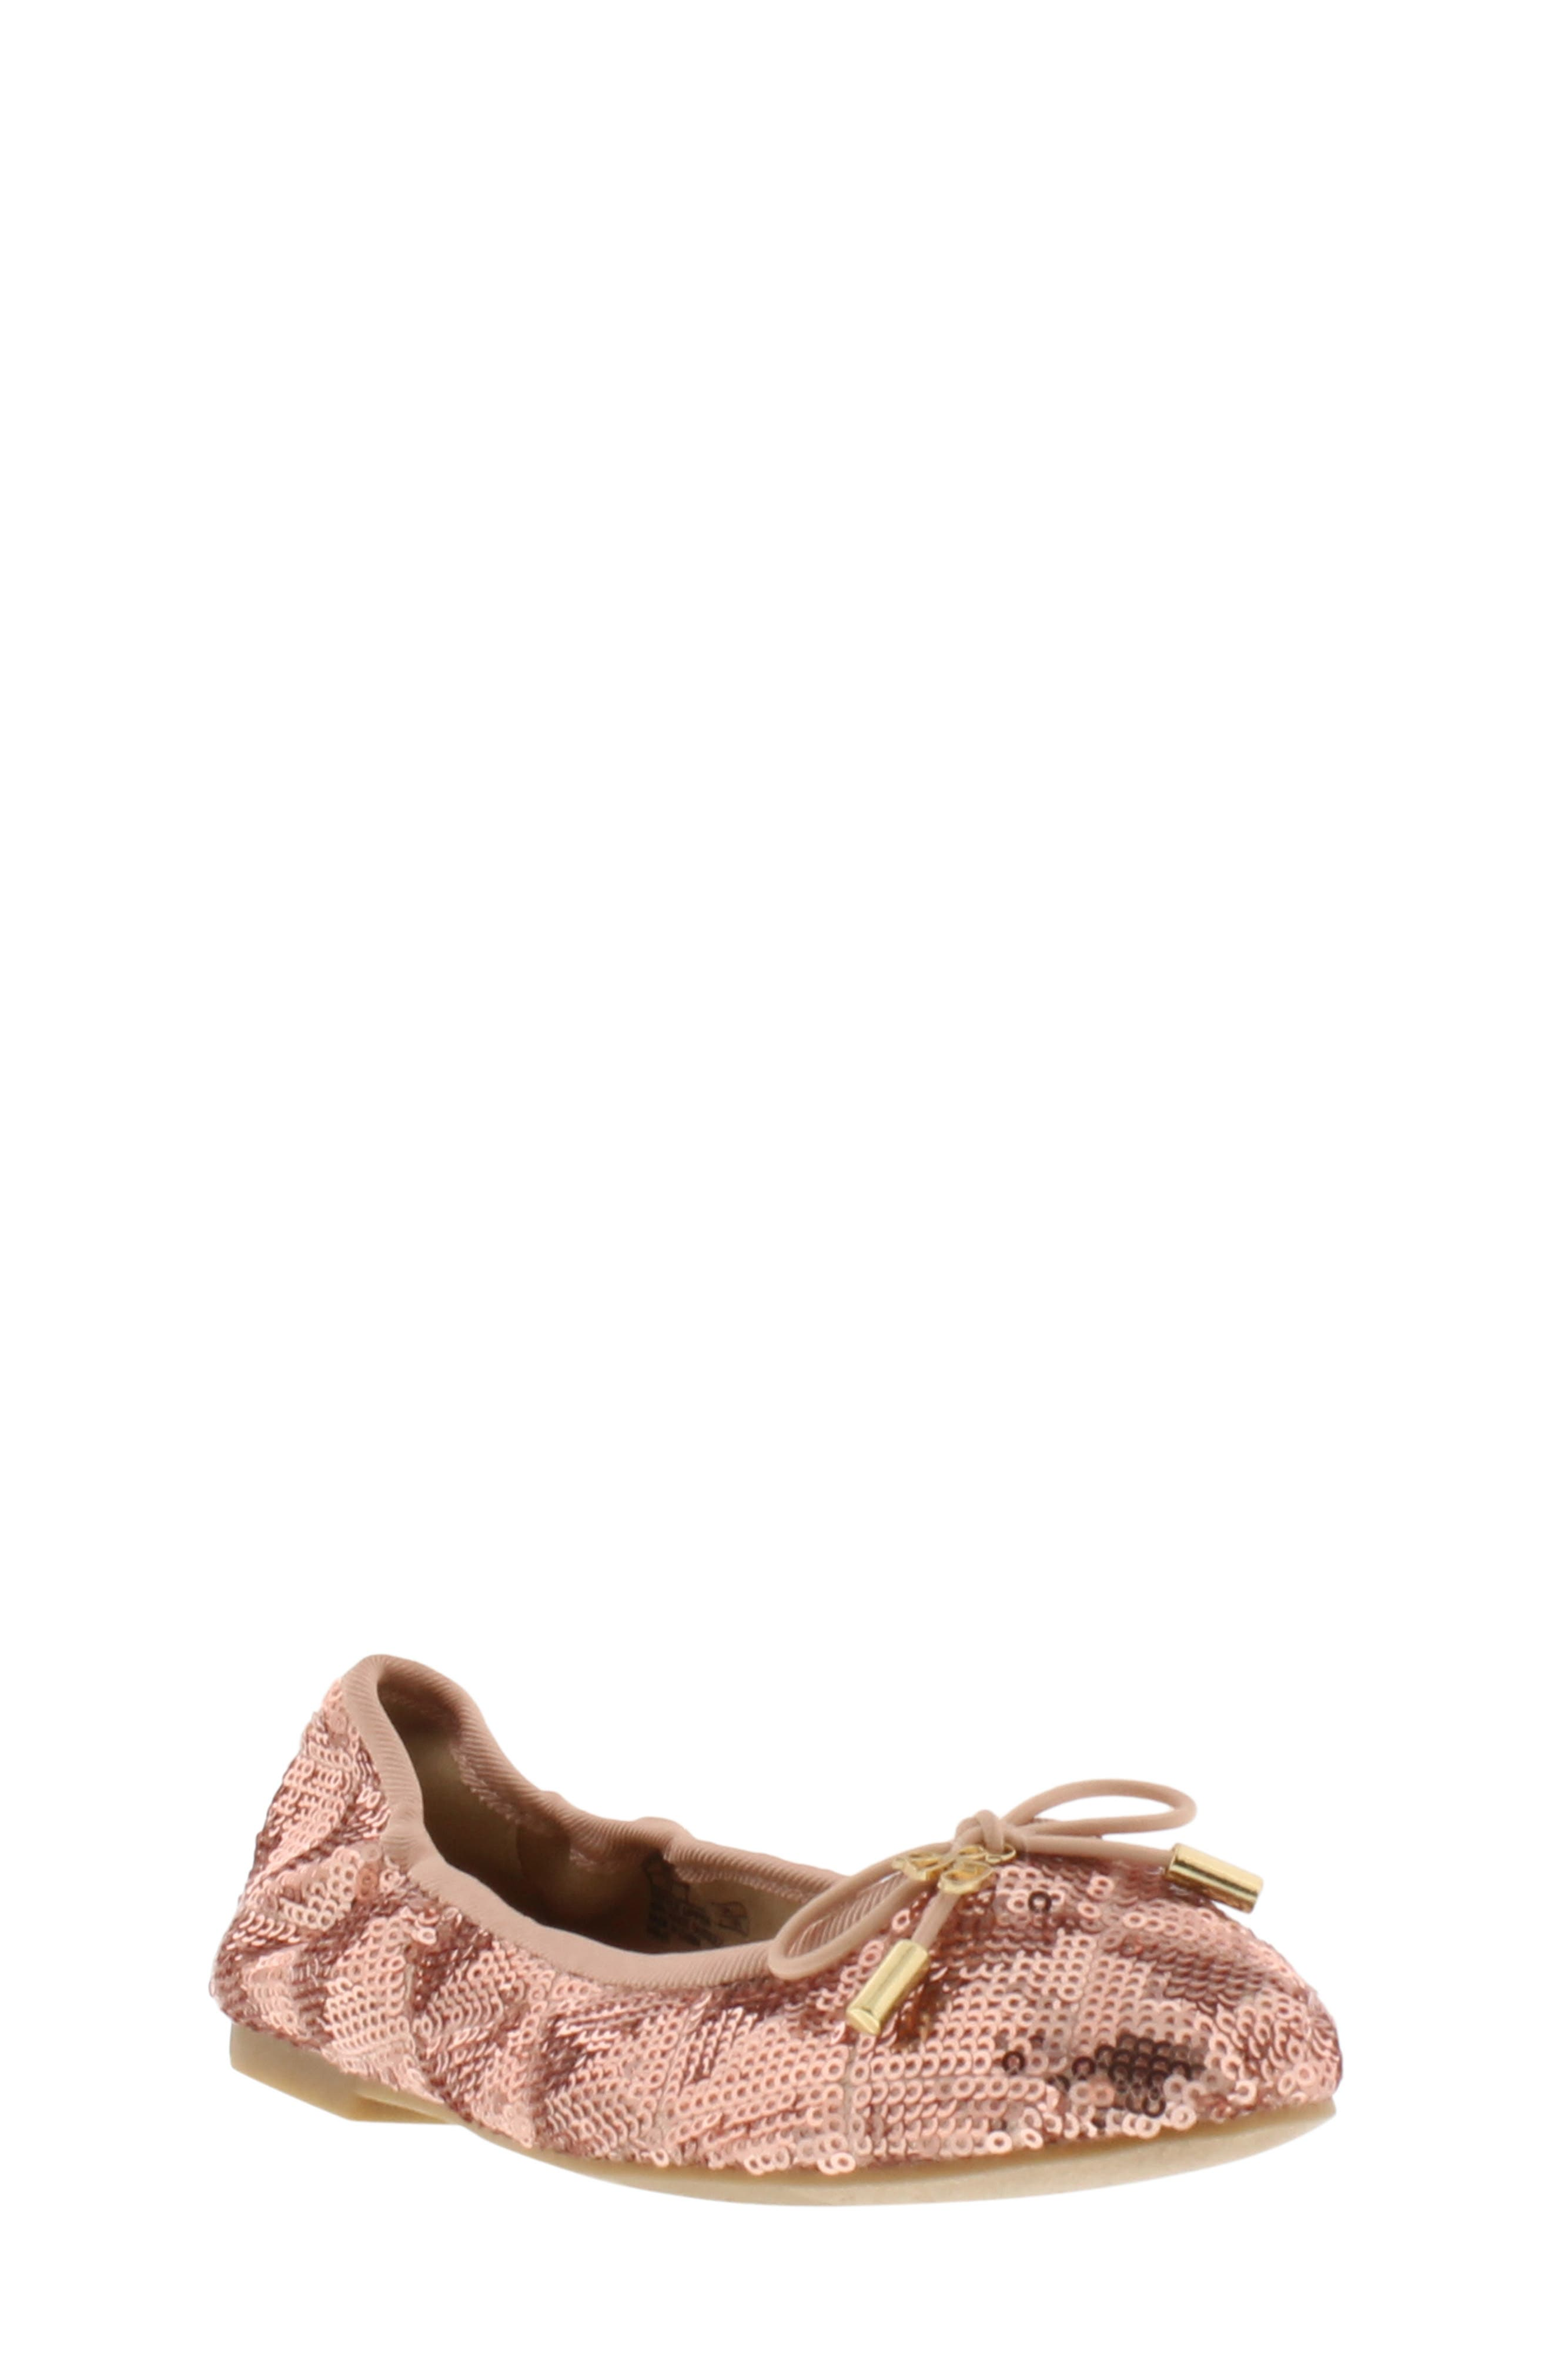 Felicia Sequin Ballet Flat,                             Main thumbnail 1, color,                             ROSE GOLD